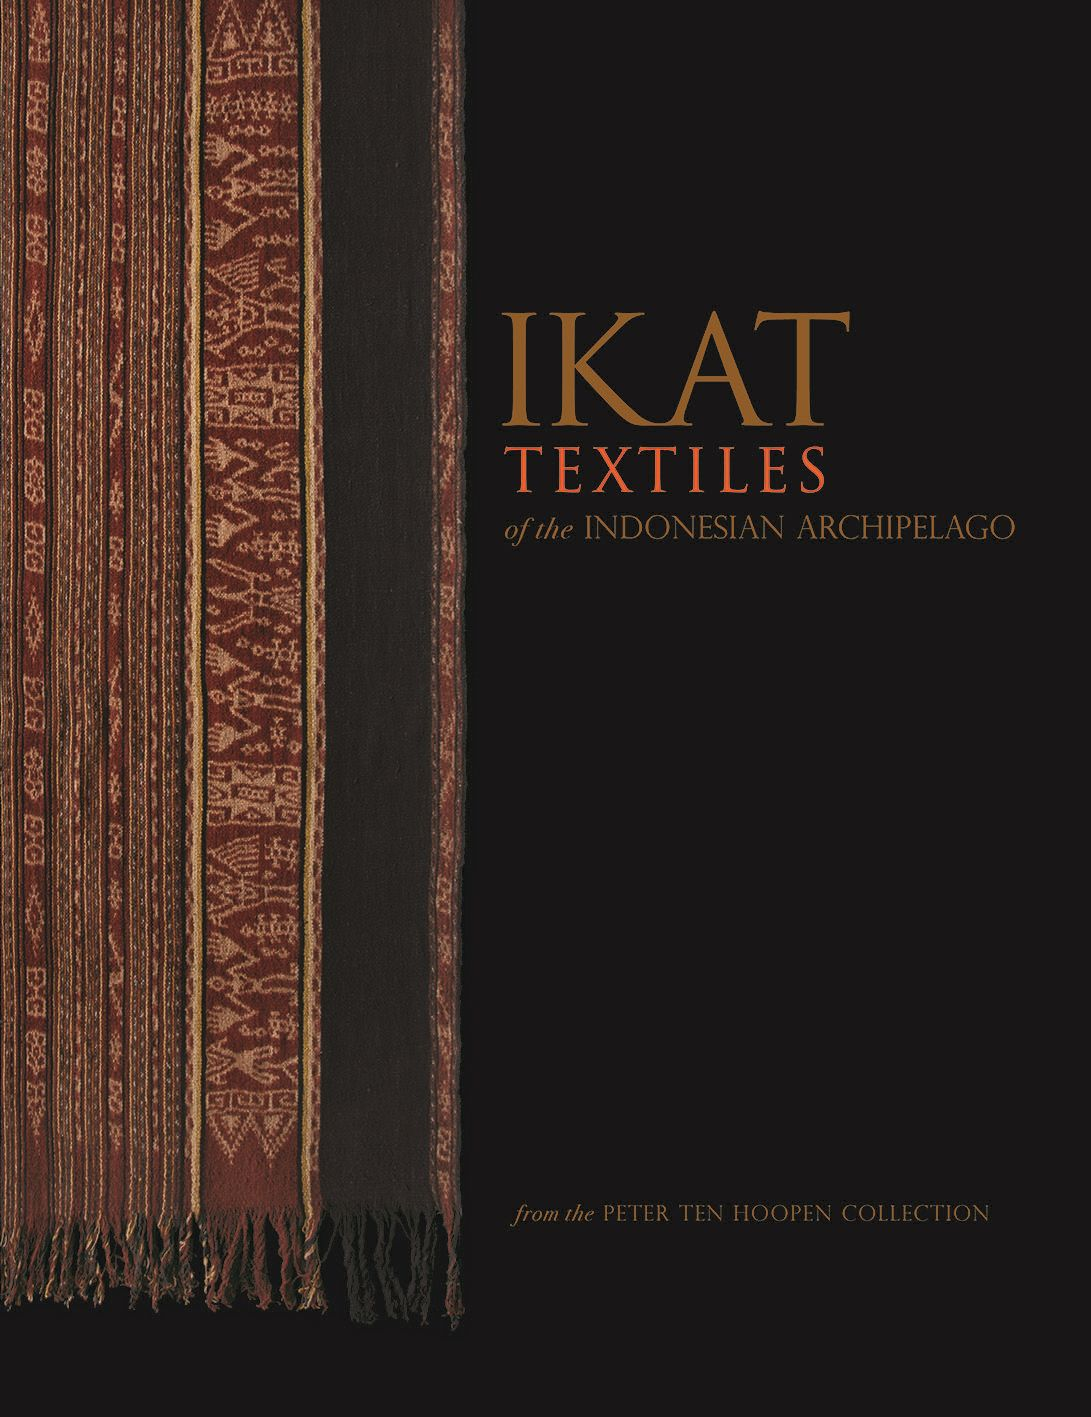 Ikat Textiles of the Indonesian Archipelago